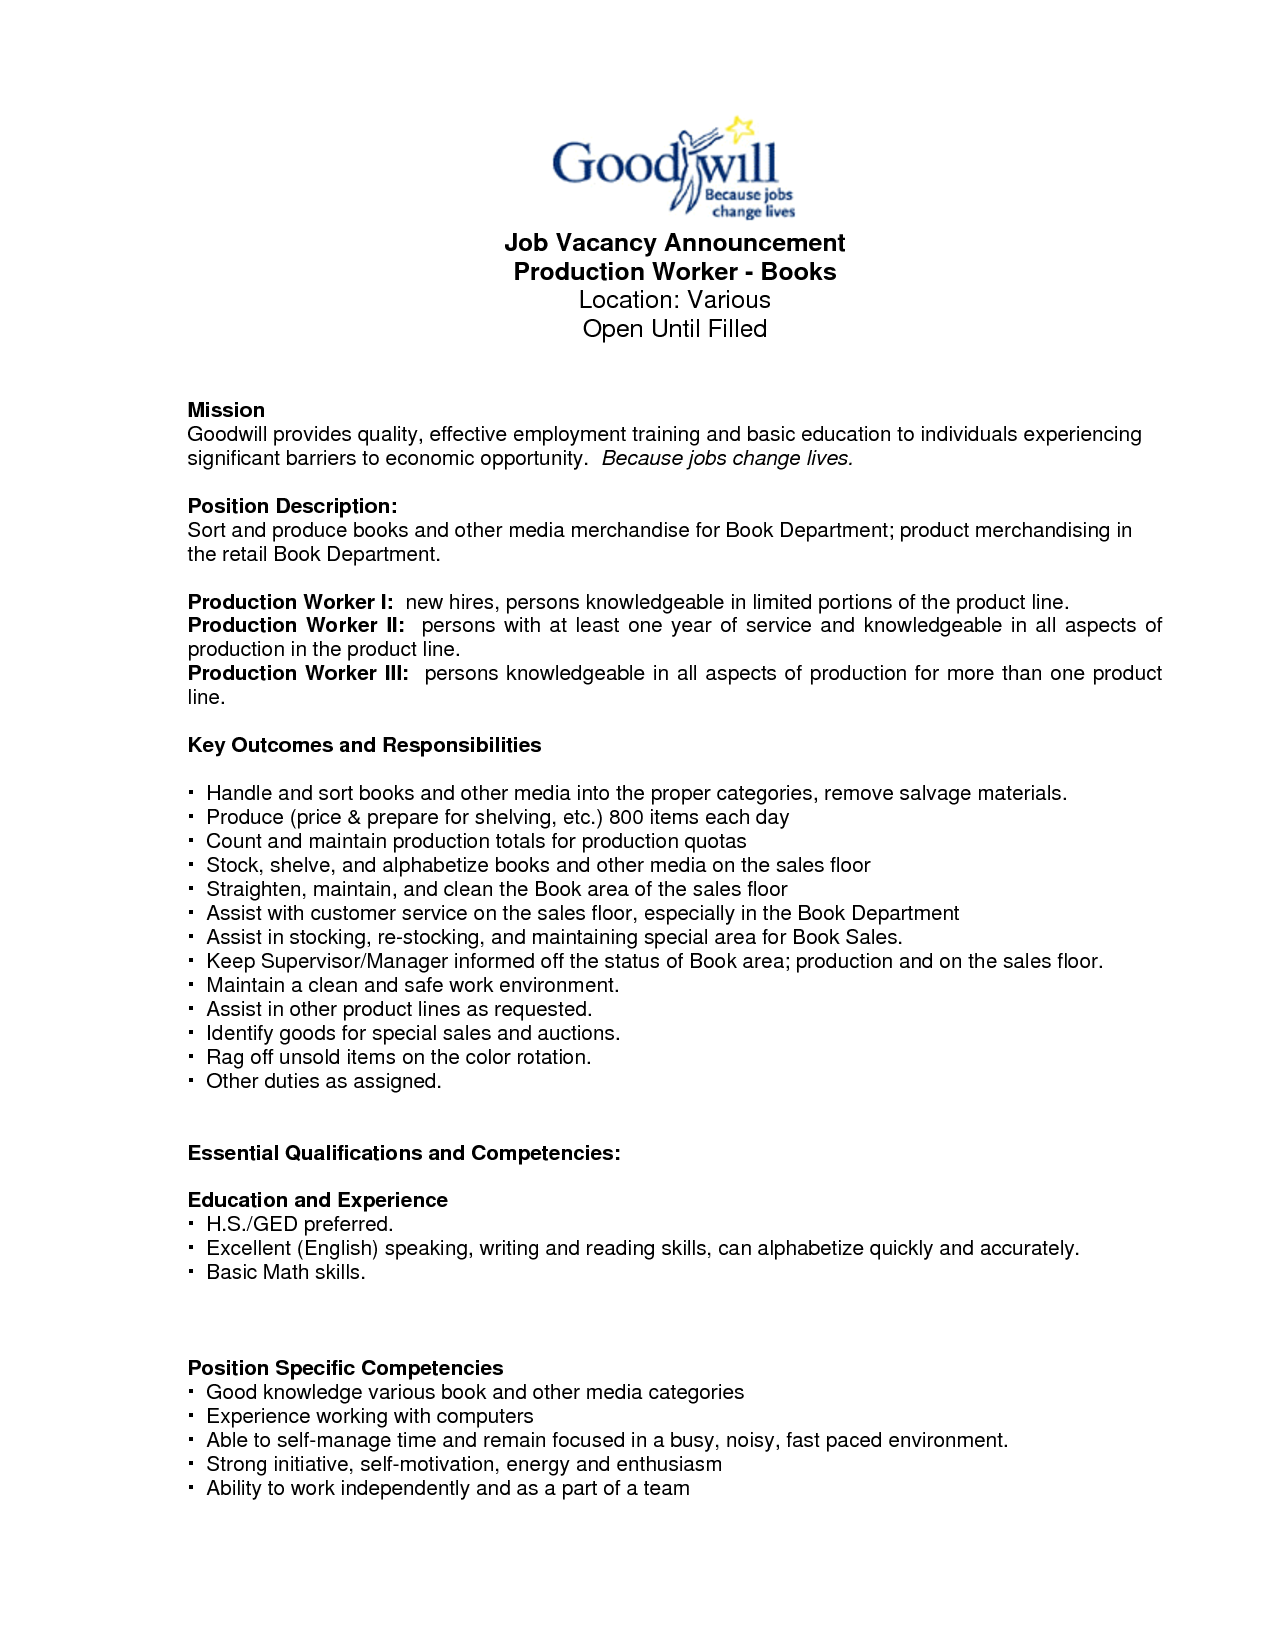 Assembly Line Resume | Production Line Worker Resume | Resume ...